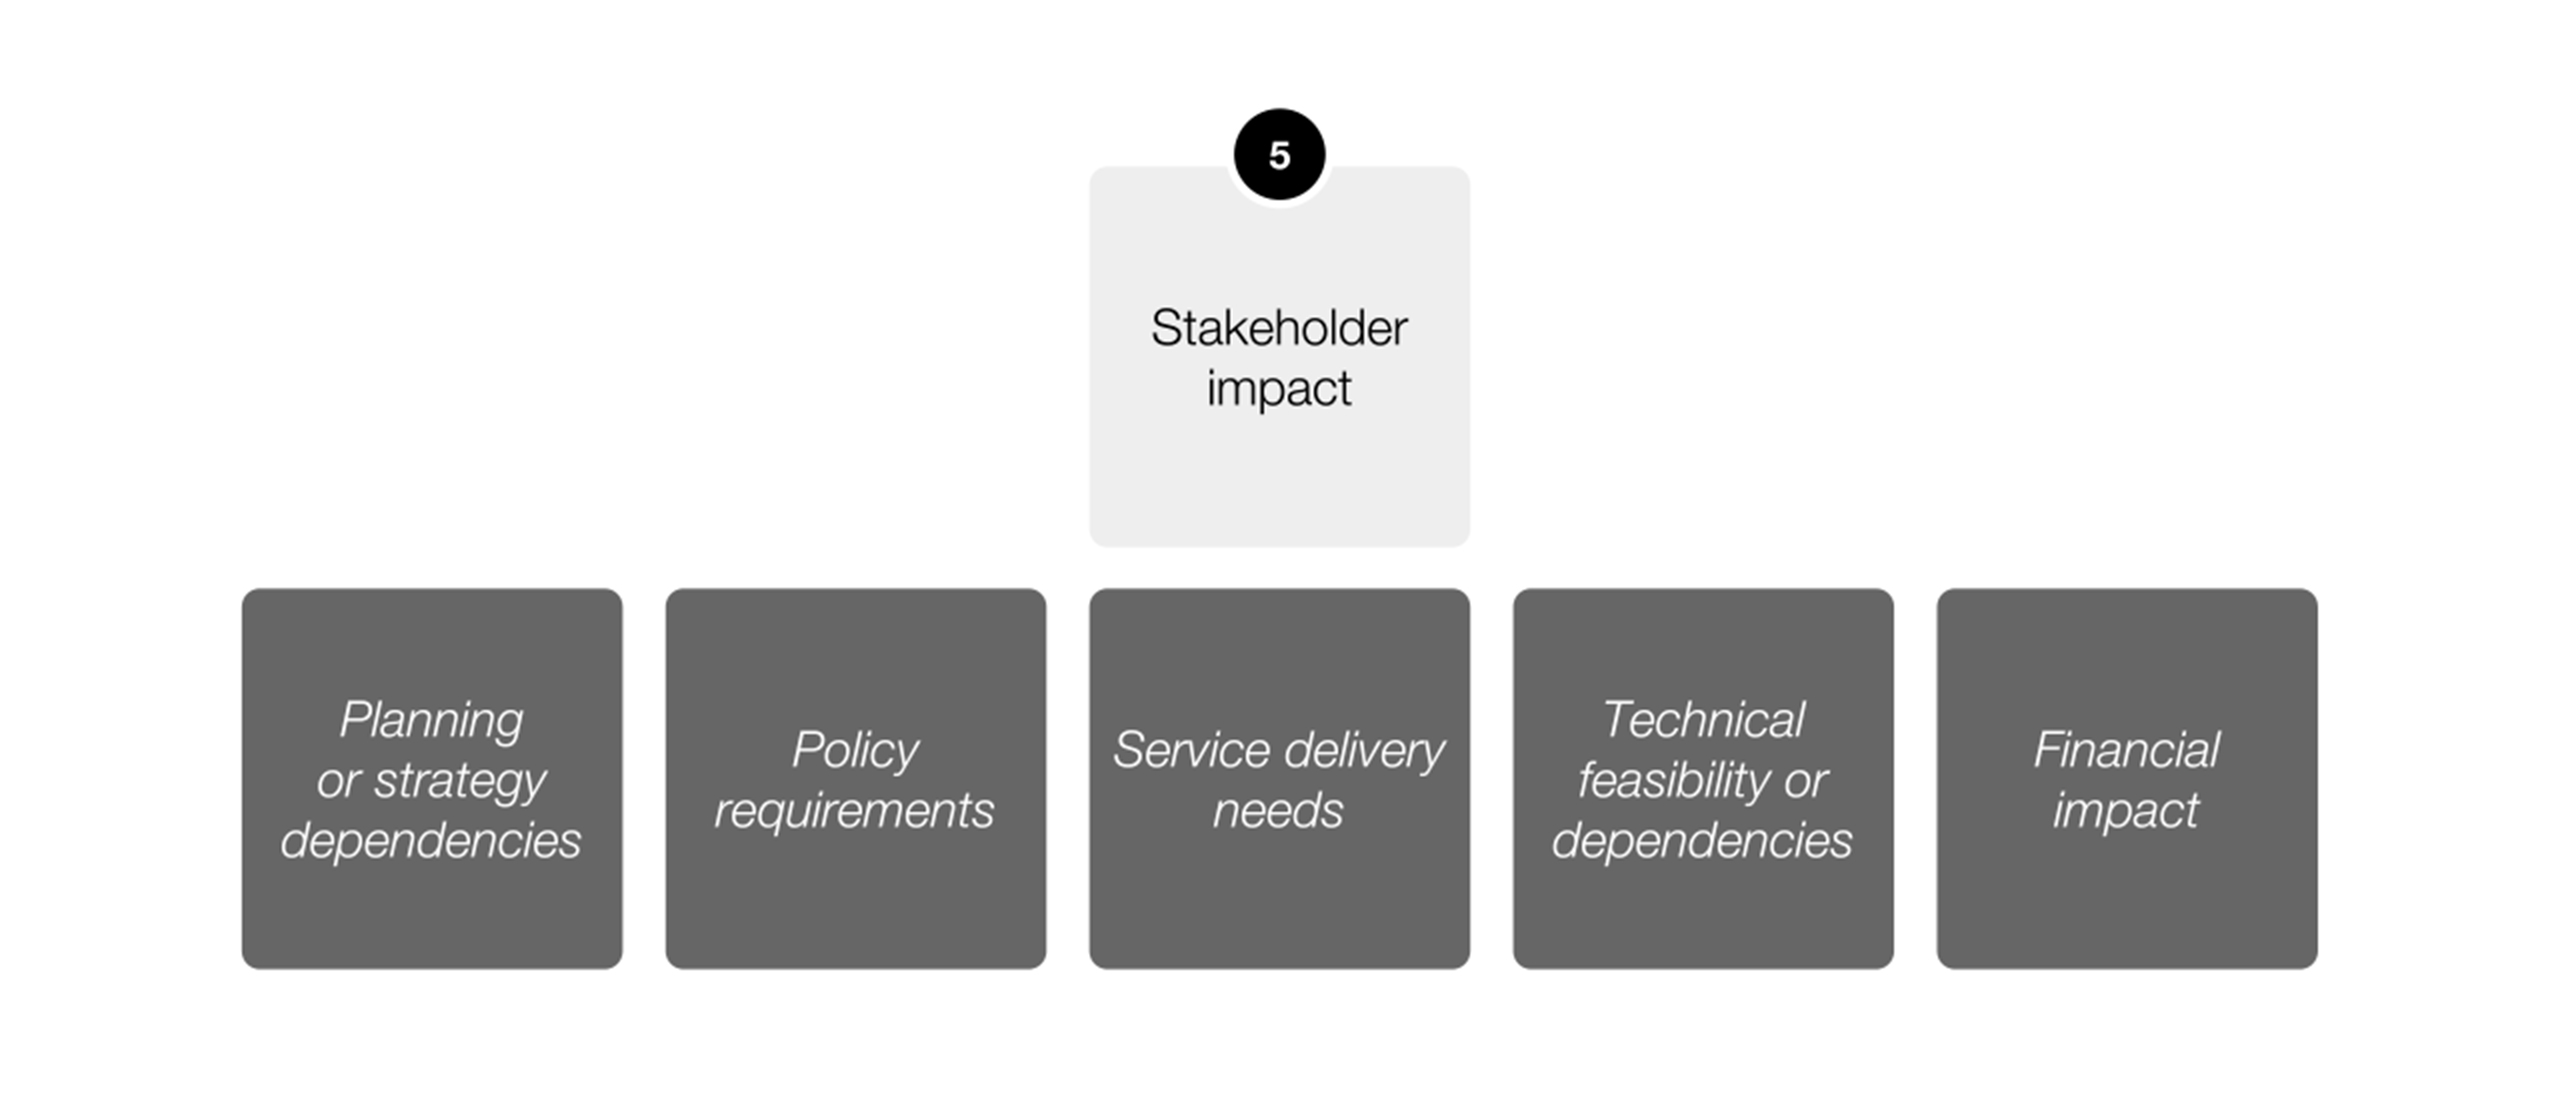 Tailor the stakeholder impact to areas that your service touches on, taking into account the of needs and requirements of those groups.